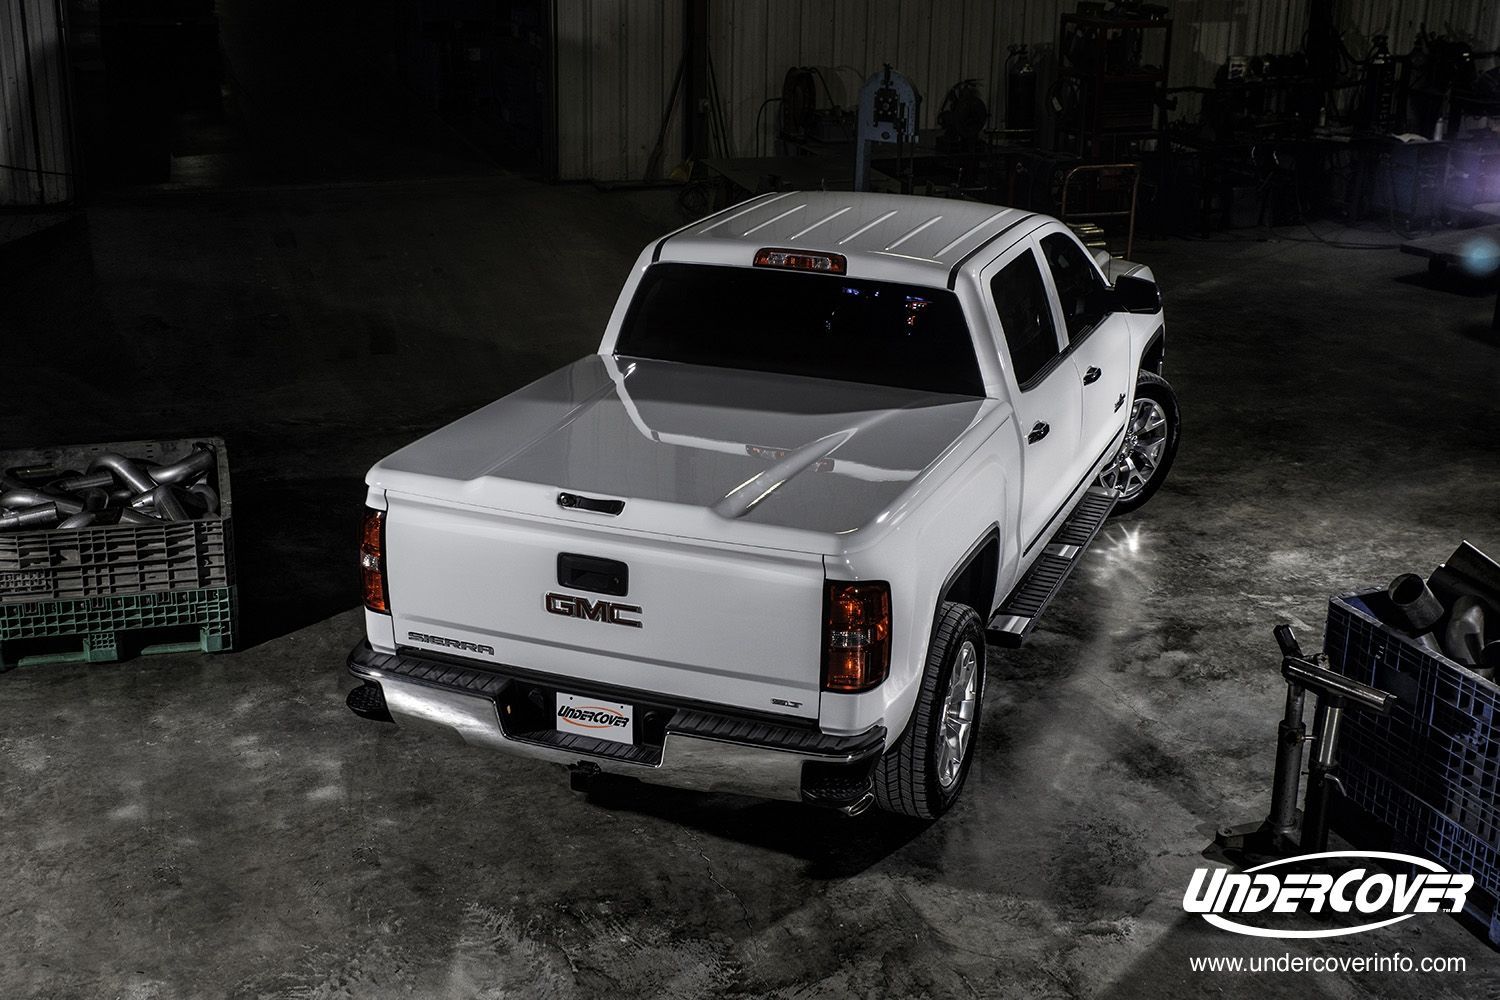 The Undercover Elite LX painted tonneau cover. Looks like